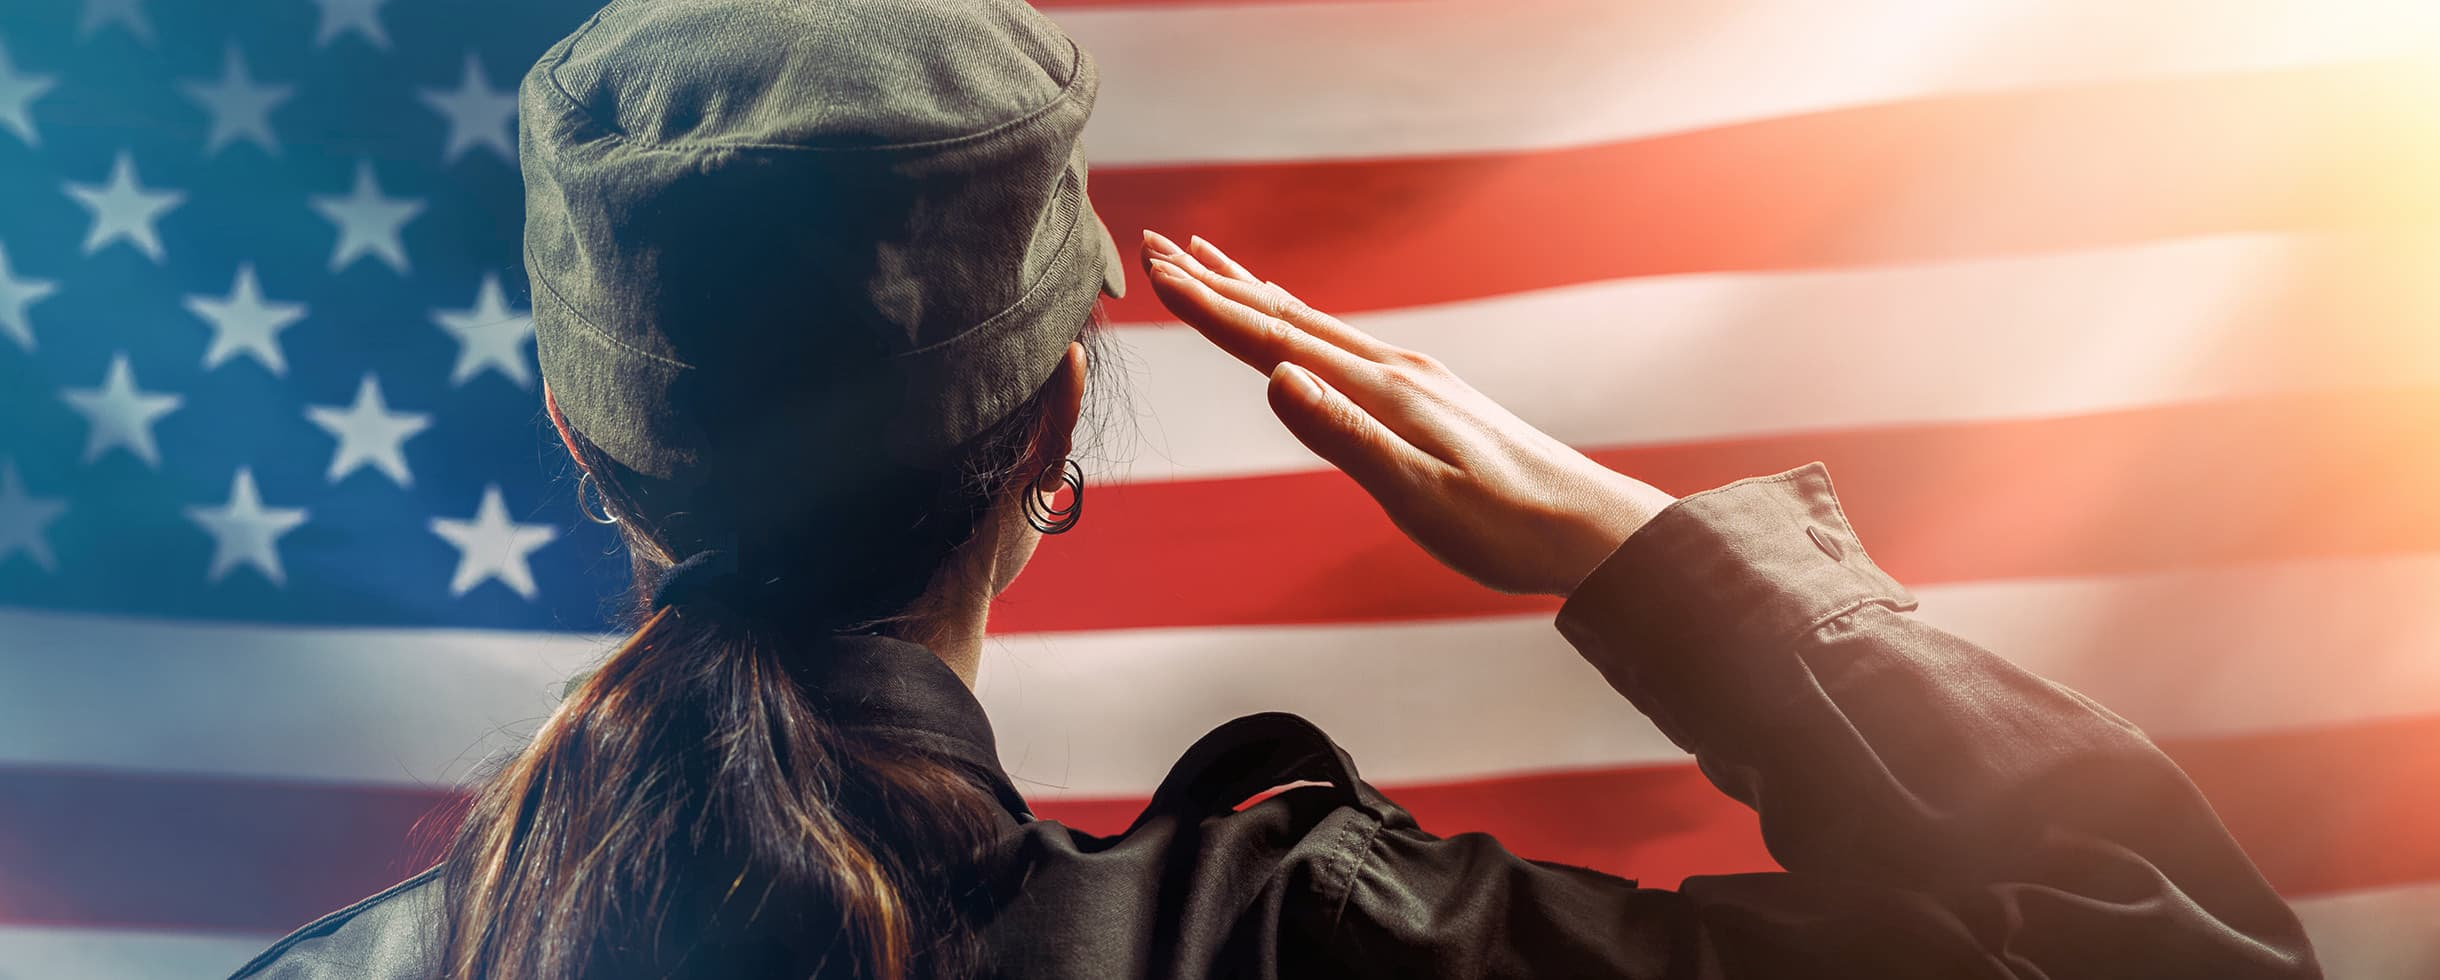 female soldier salutes the American flag